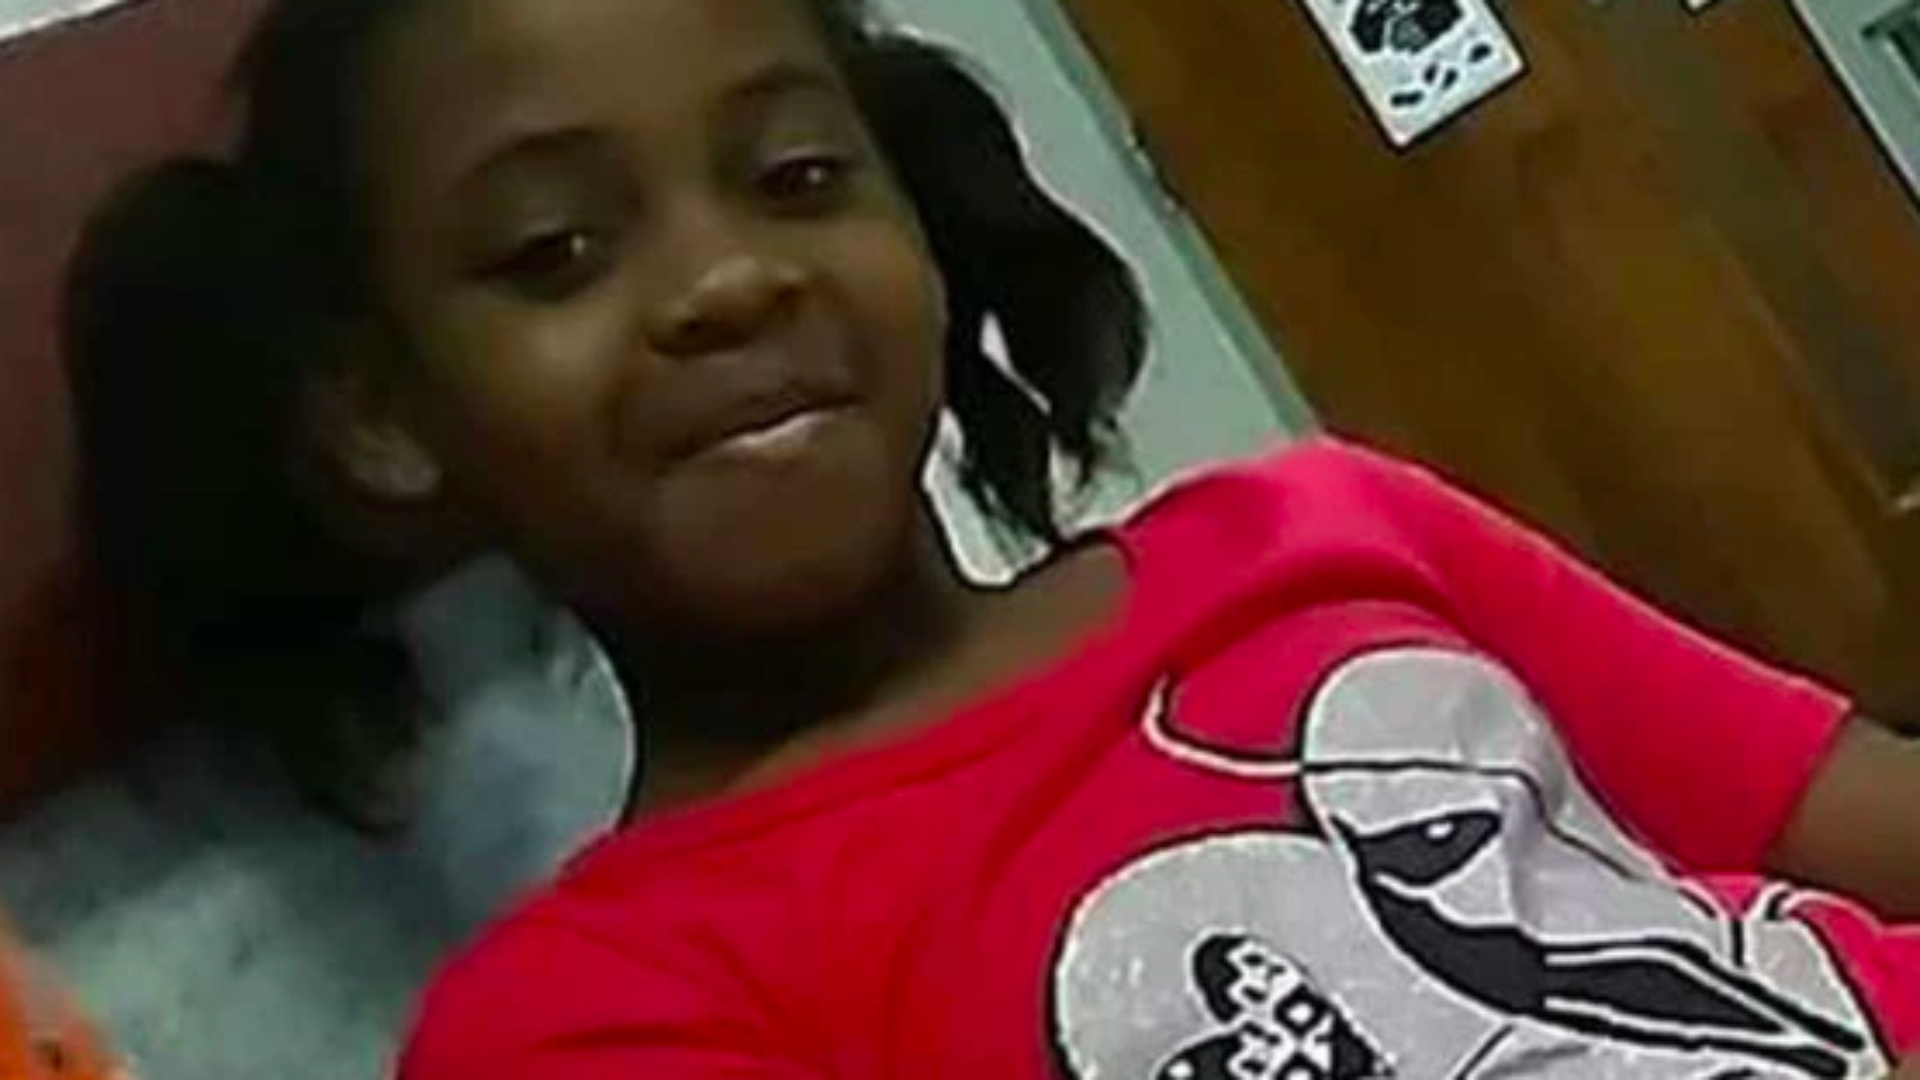 McKenzie Adams, The 9-Year-Old Who Committed Suicide, Is Laid To Rest